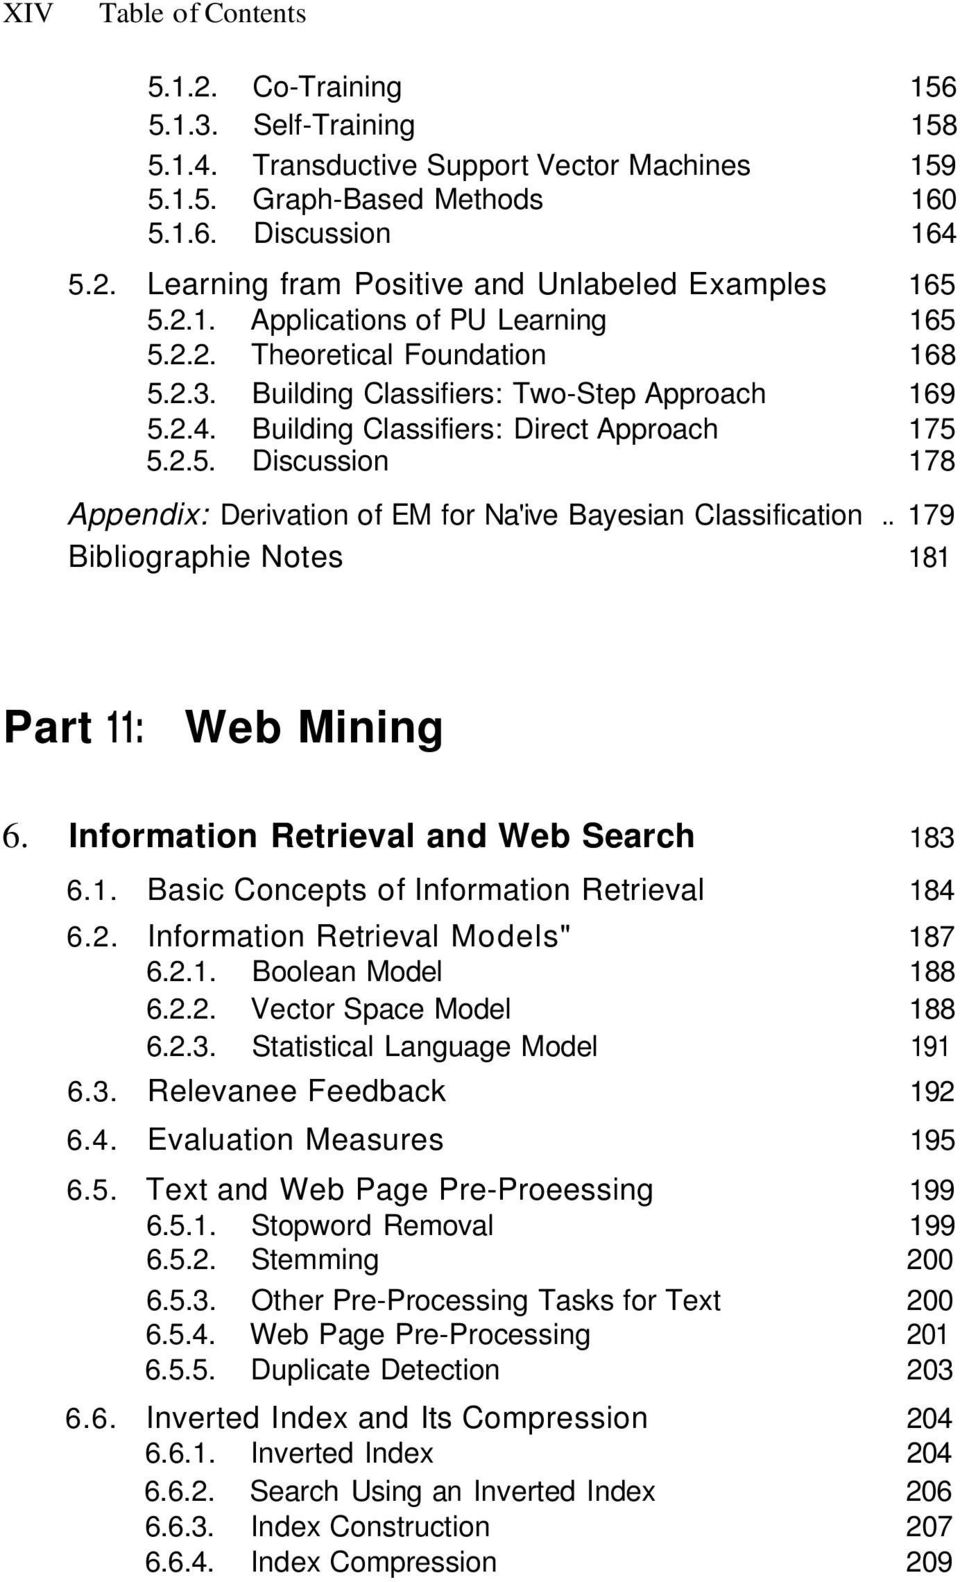 ". 179 Bibliographie Notes 181 Part 11: Web Mining 6. Information Retrieval and Web Search 183 6.1. Basic Concepts of Information Retrieval 184 6.2. Information Retrieval Models"" 187 6.2.1. Boolean Model 188 6."